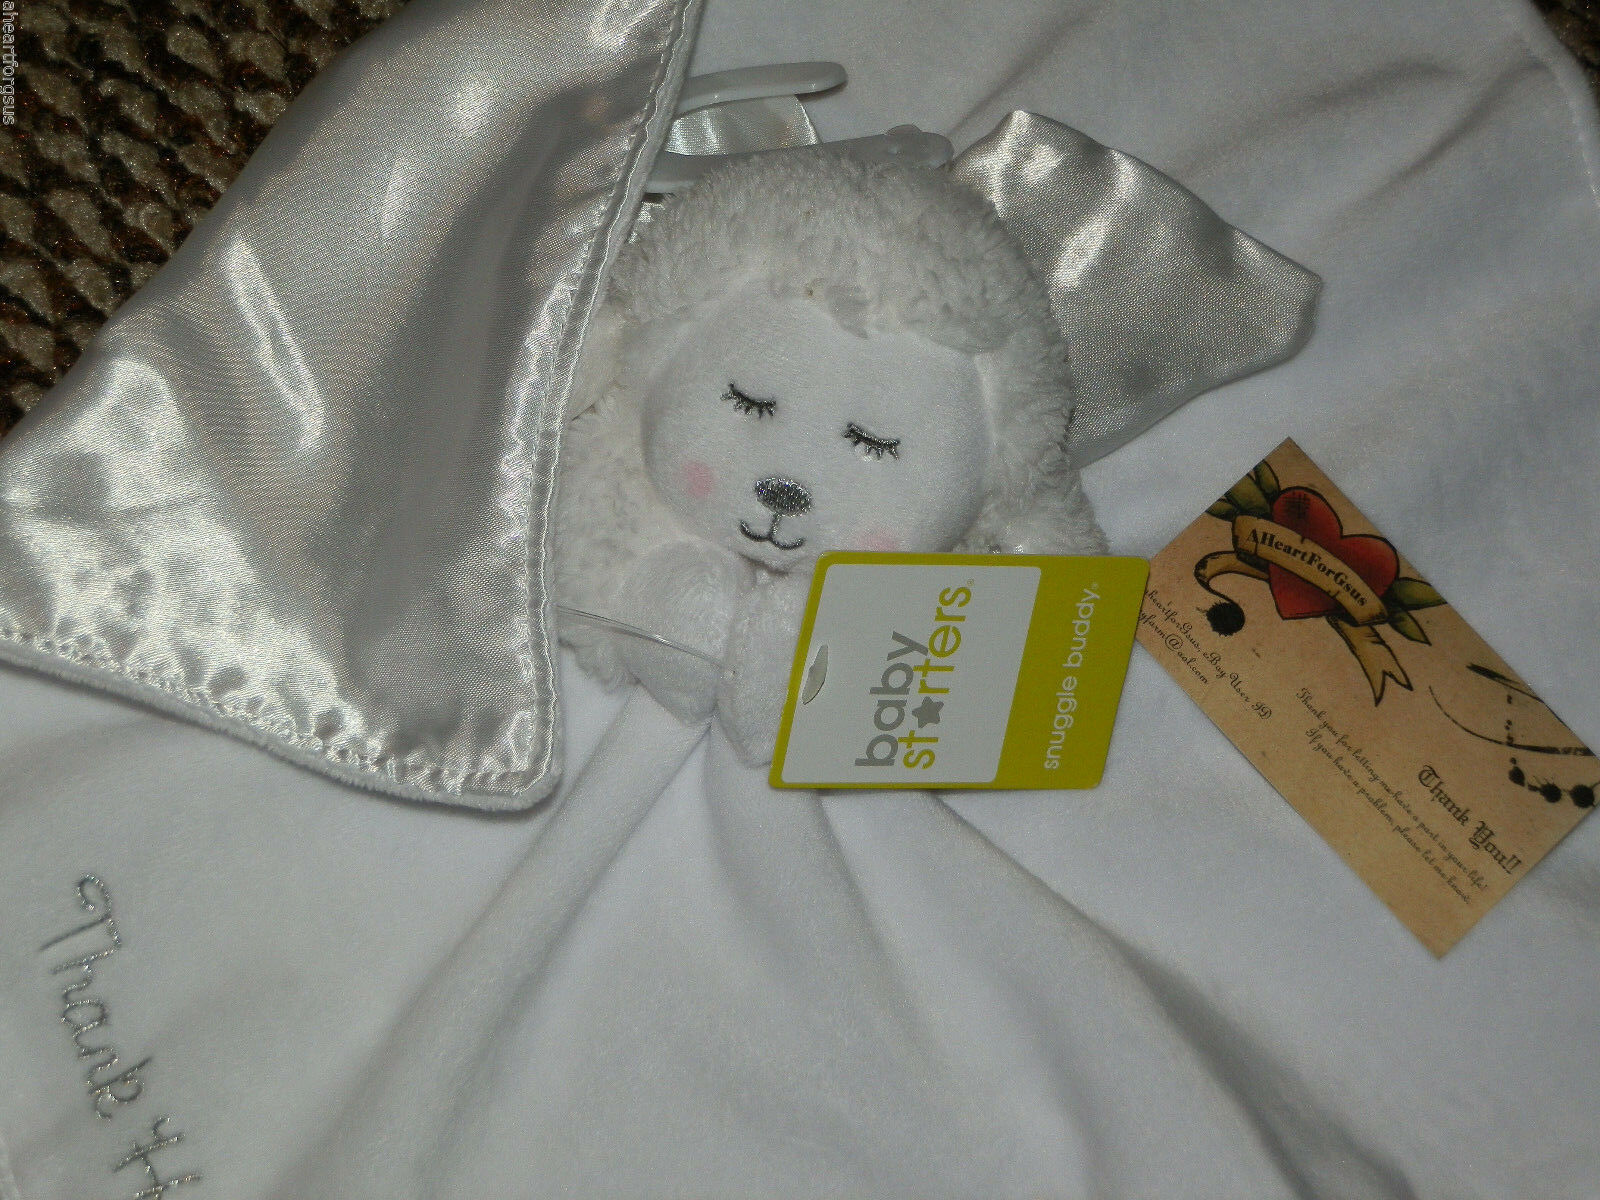 BABY STARTERS SECURITY BLANKET SHEEP ANGEL THANK HEAVEN 4 LITTLE BABIES PRAYING